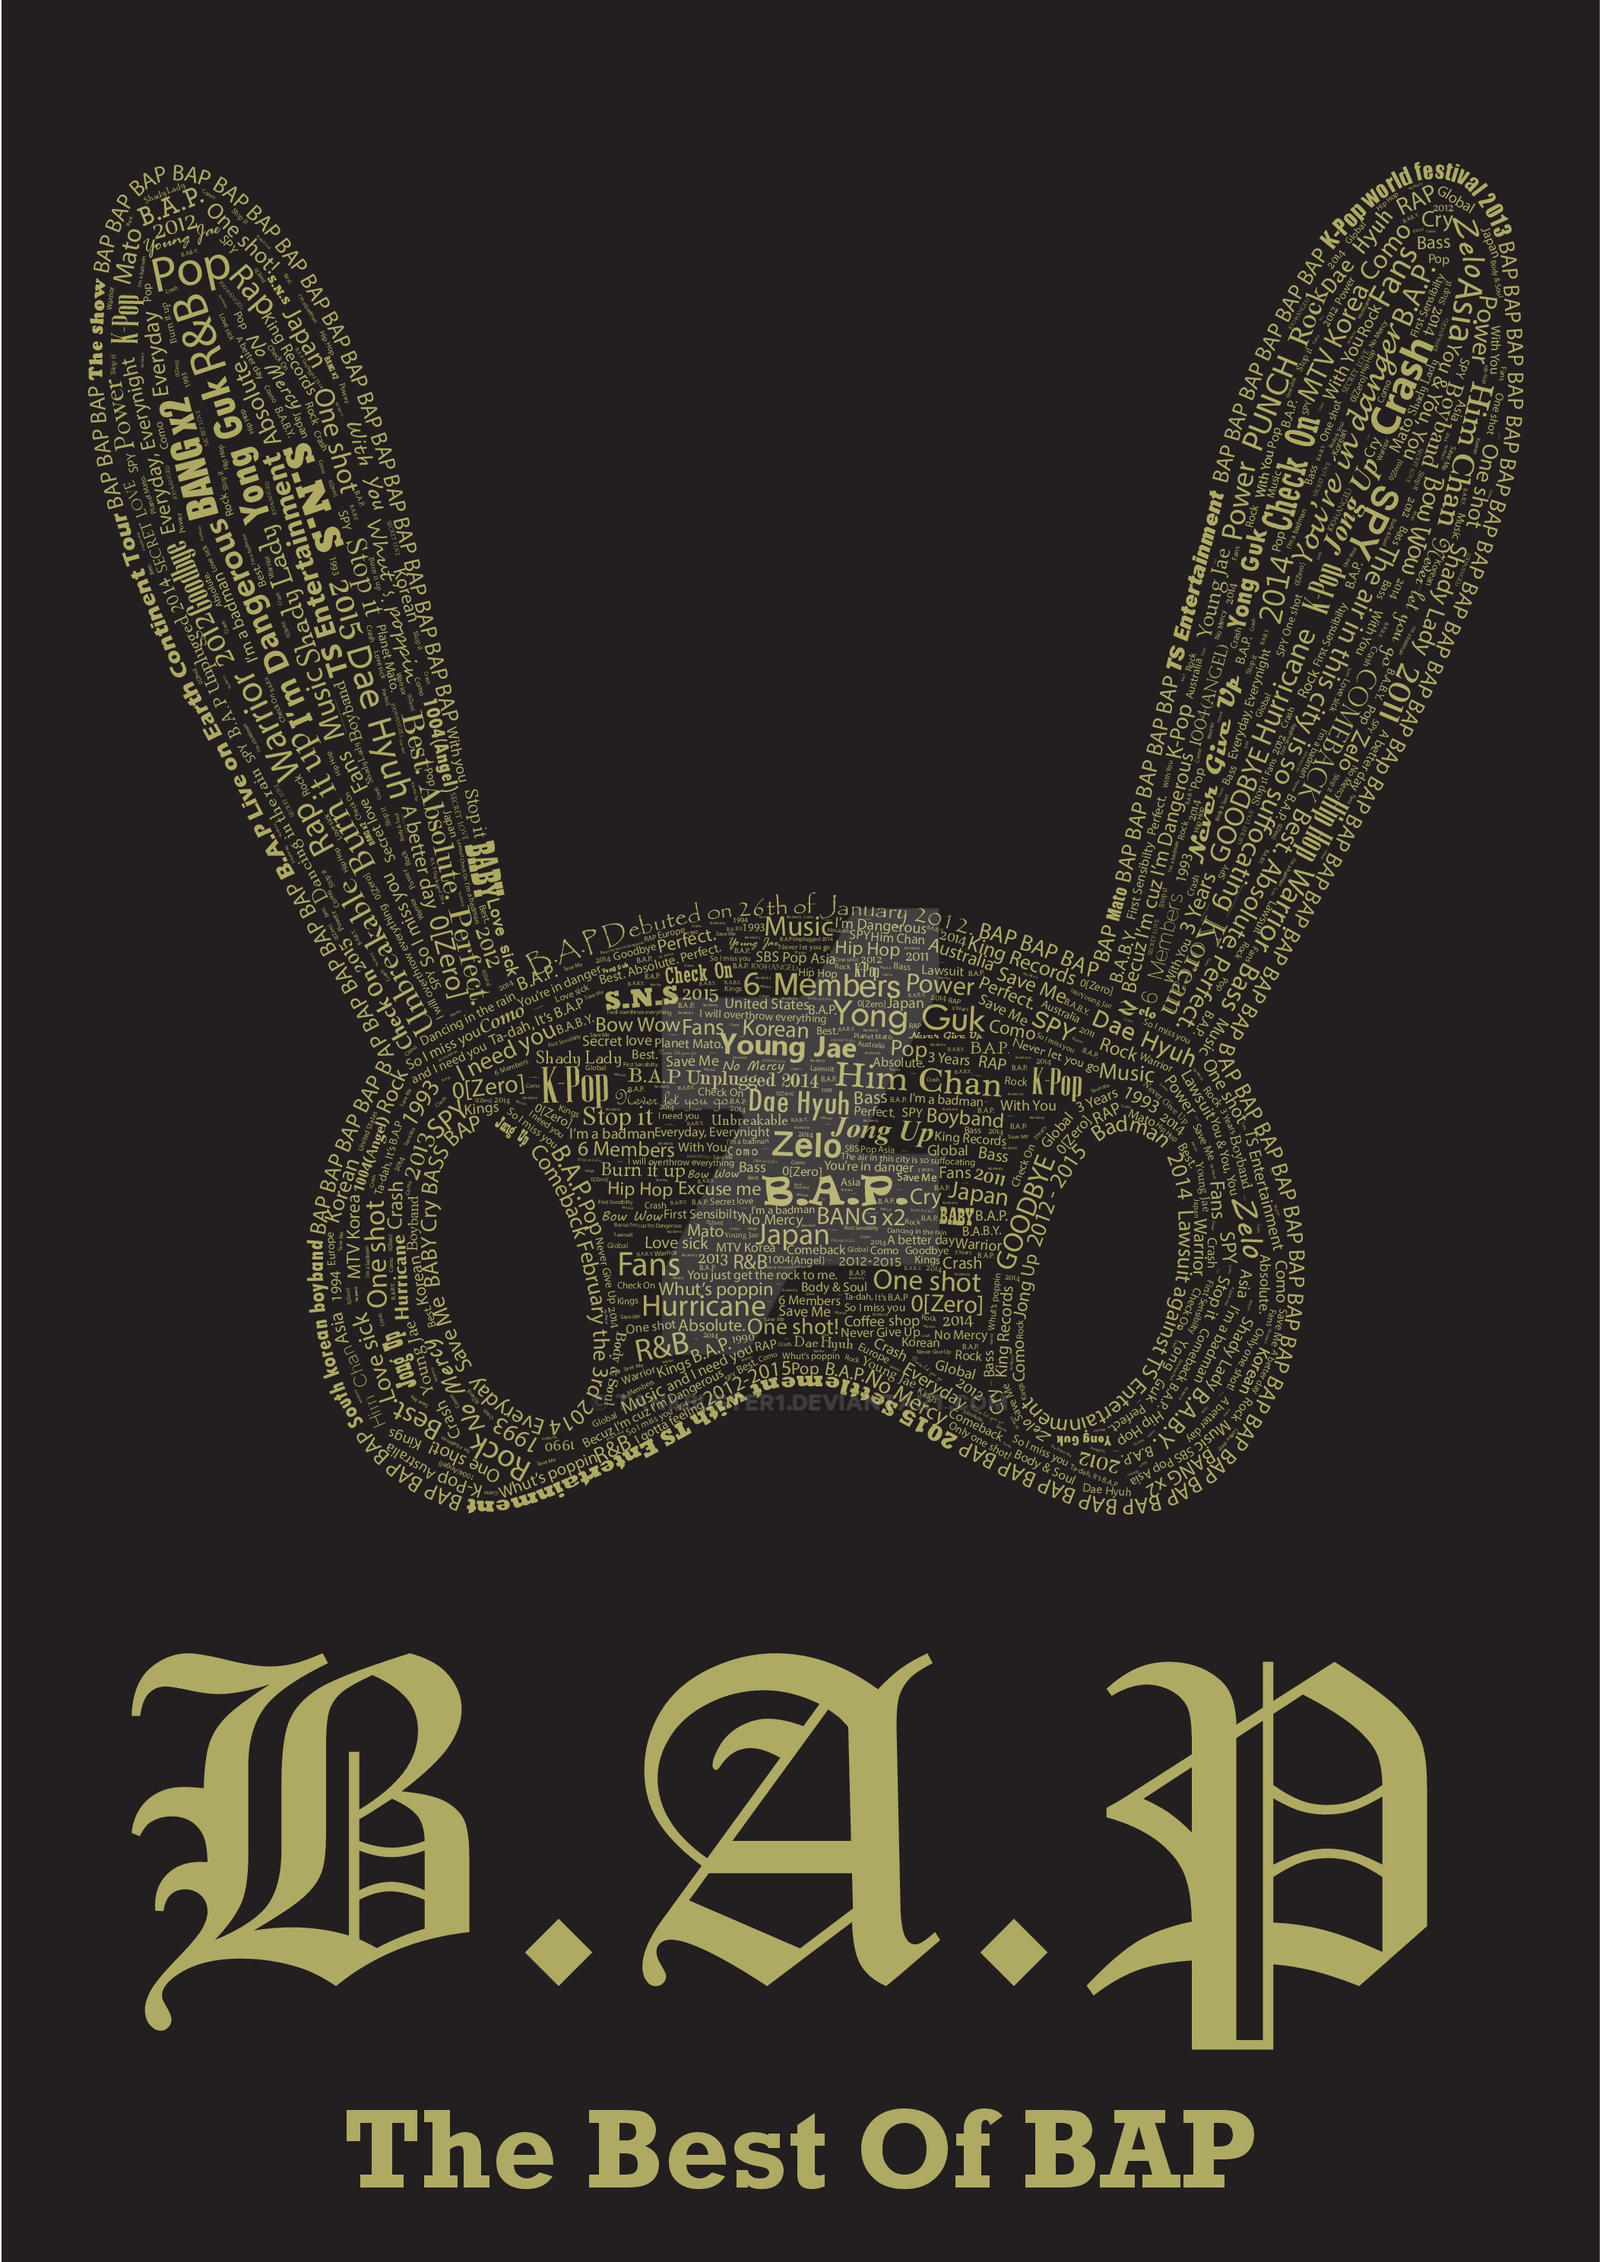 bap 1004 album cover-#16